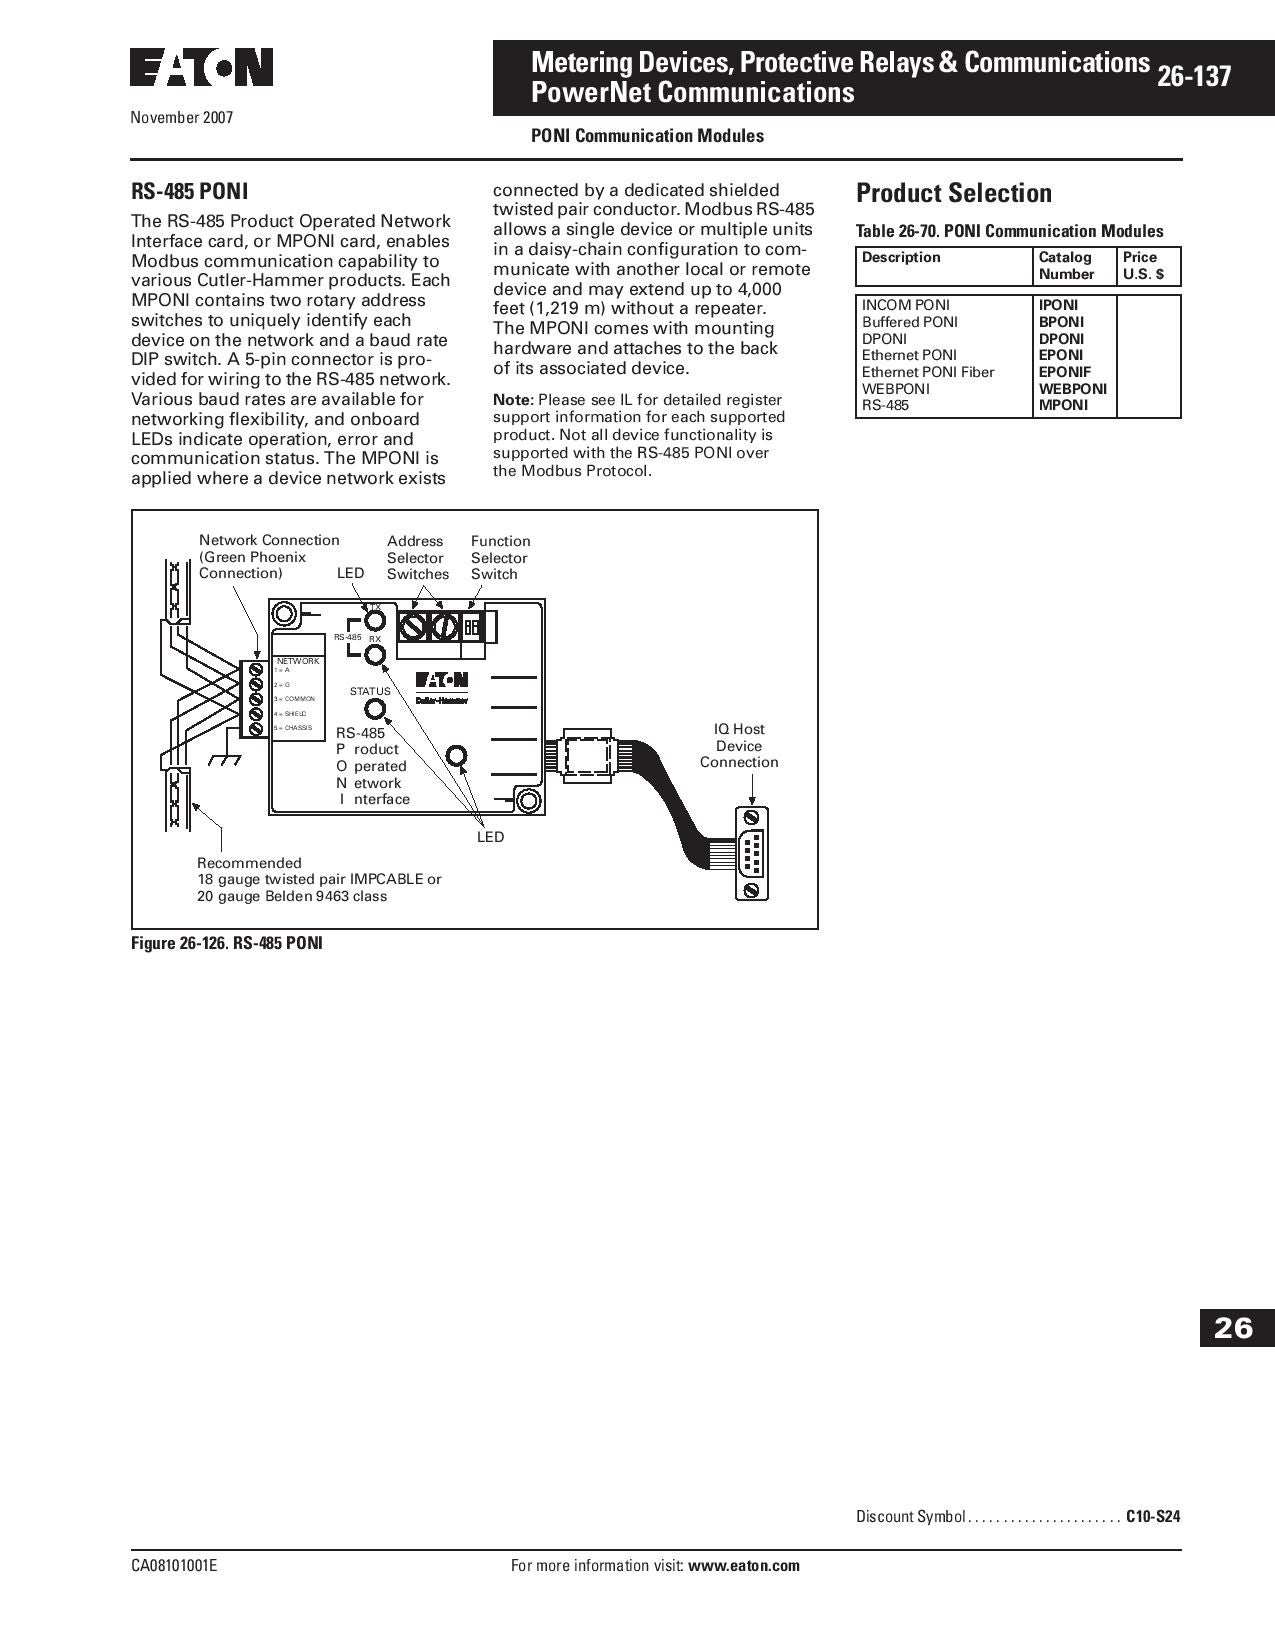 tab 26 - metering devices  protective relays by greg campbell  page 137